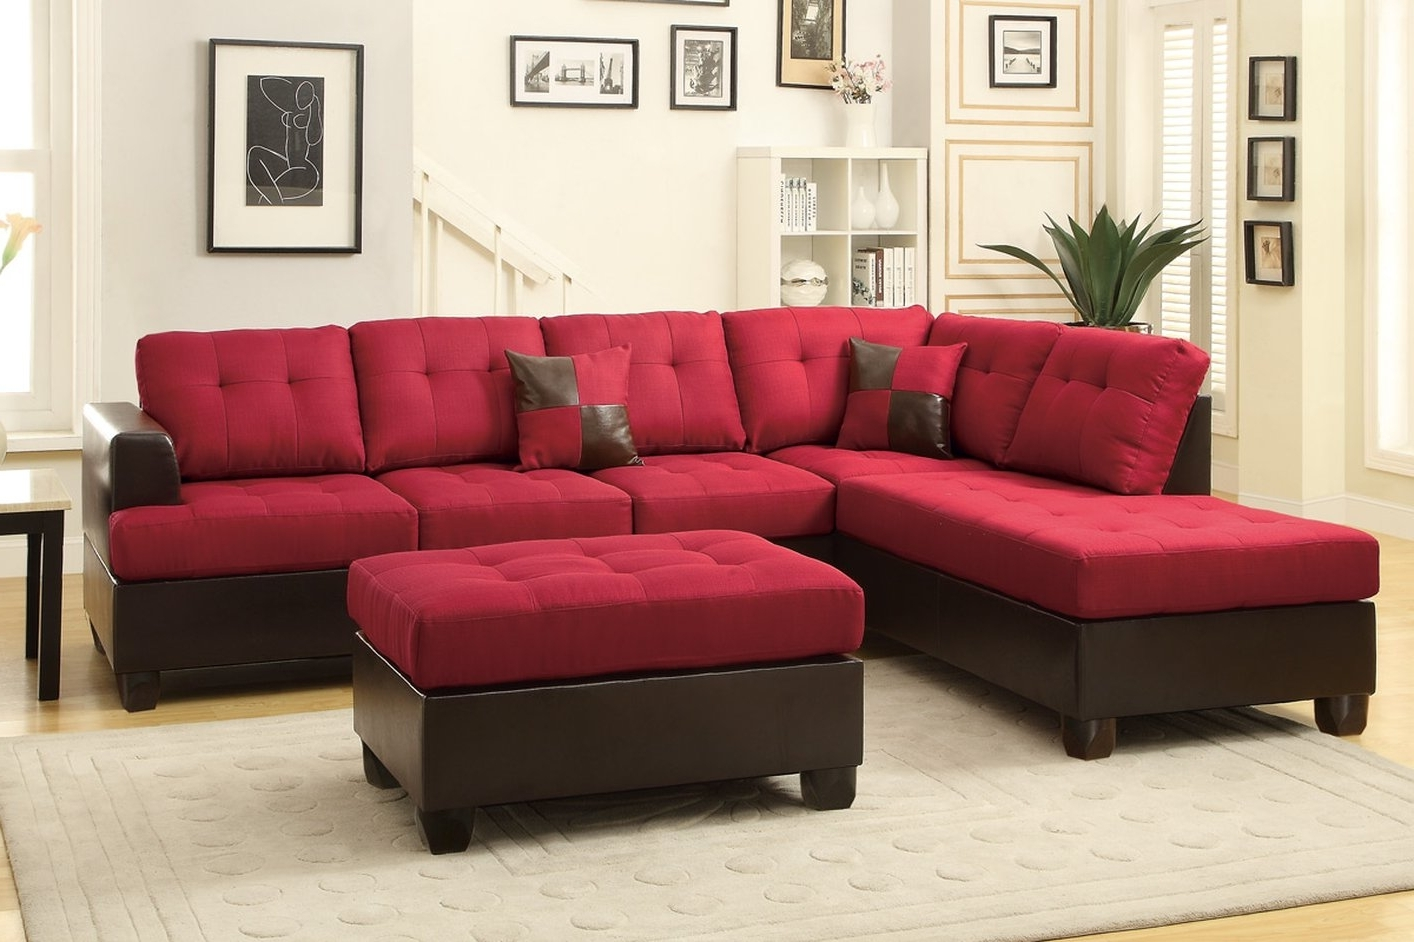 Glamorous Genuine Leather Chesterfield Sofa As Well As Modern Intended For Fashionable Red Sectional Sofas With Chaise (View 5 of 15)